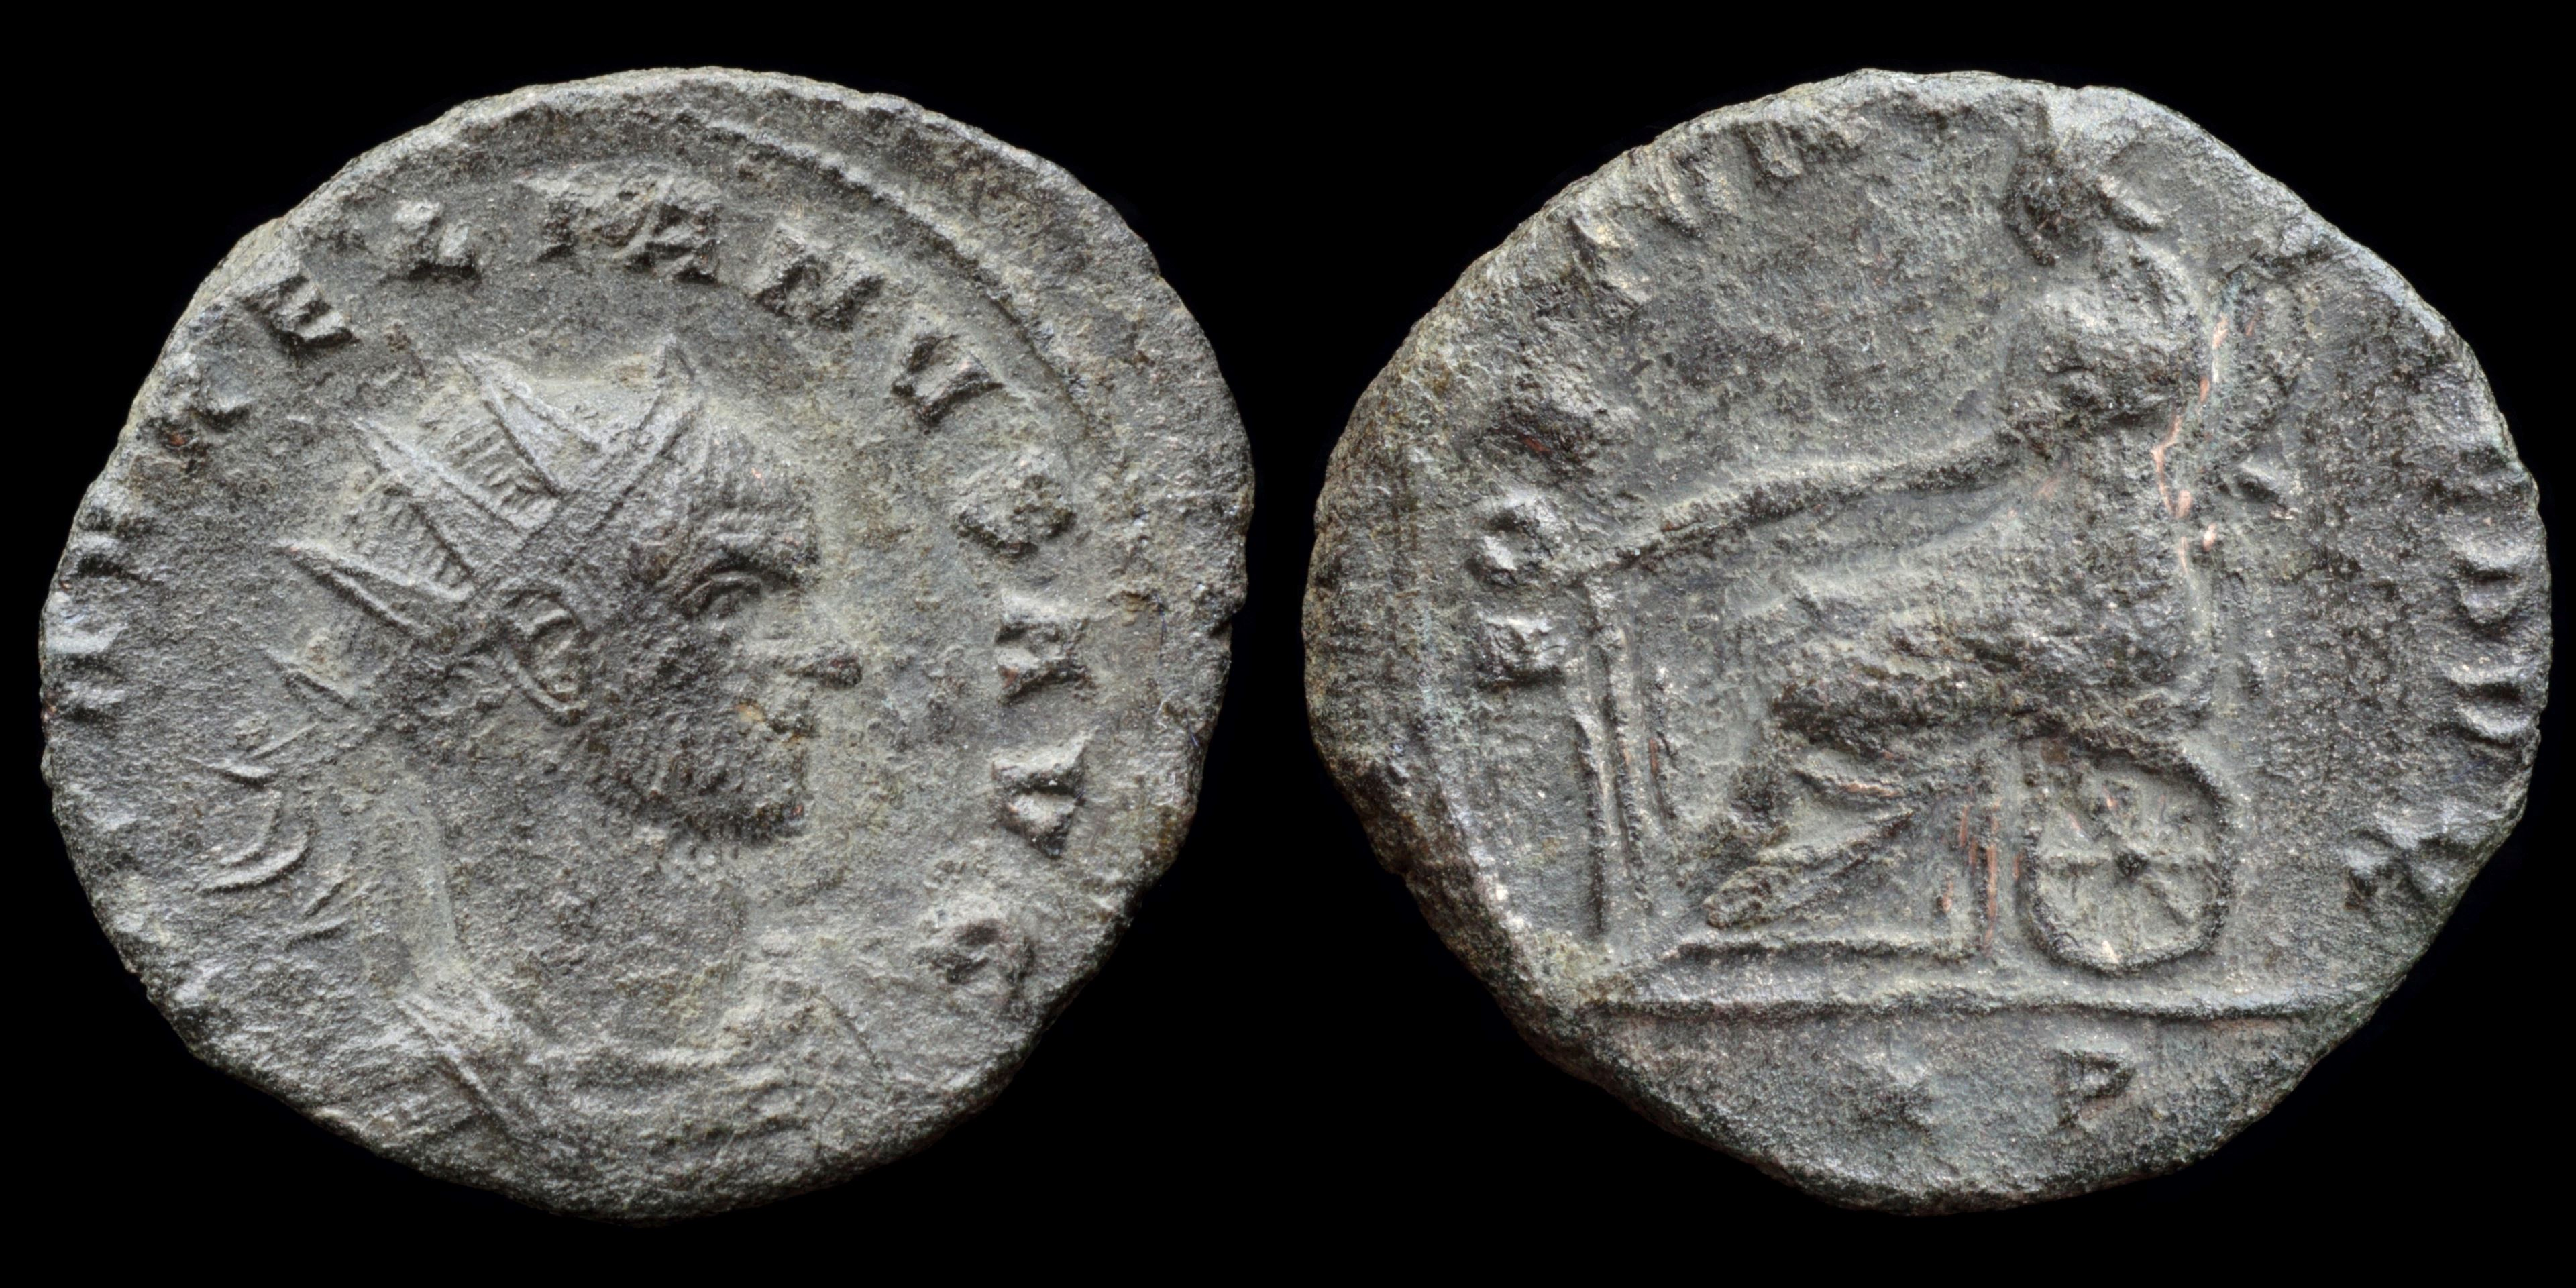 /Files/Images/Coinsite/CoinDB/306_Aurelian_Fortuna.jpg